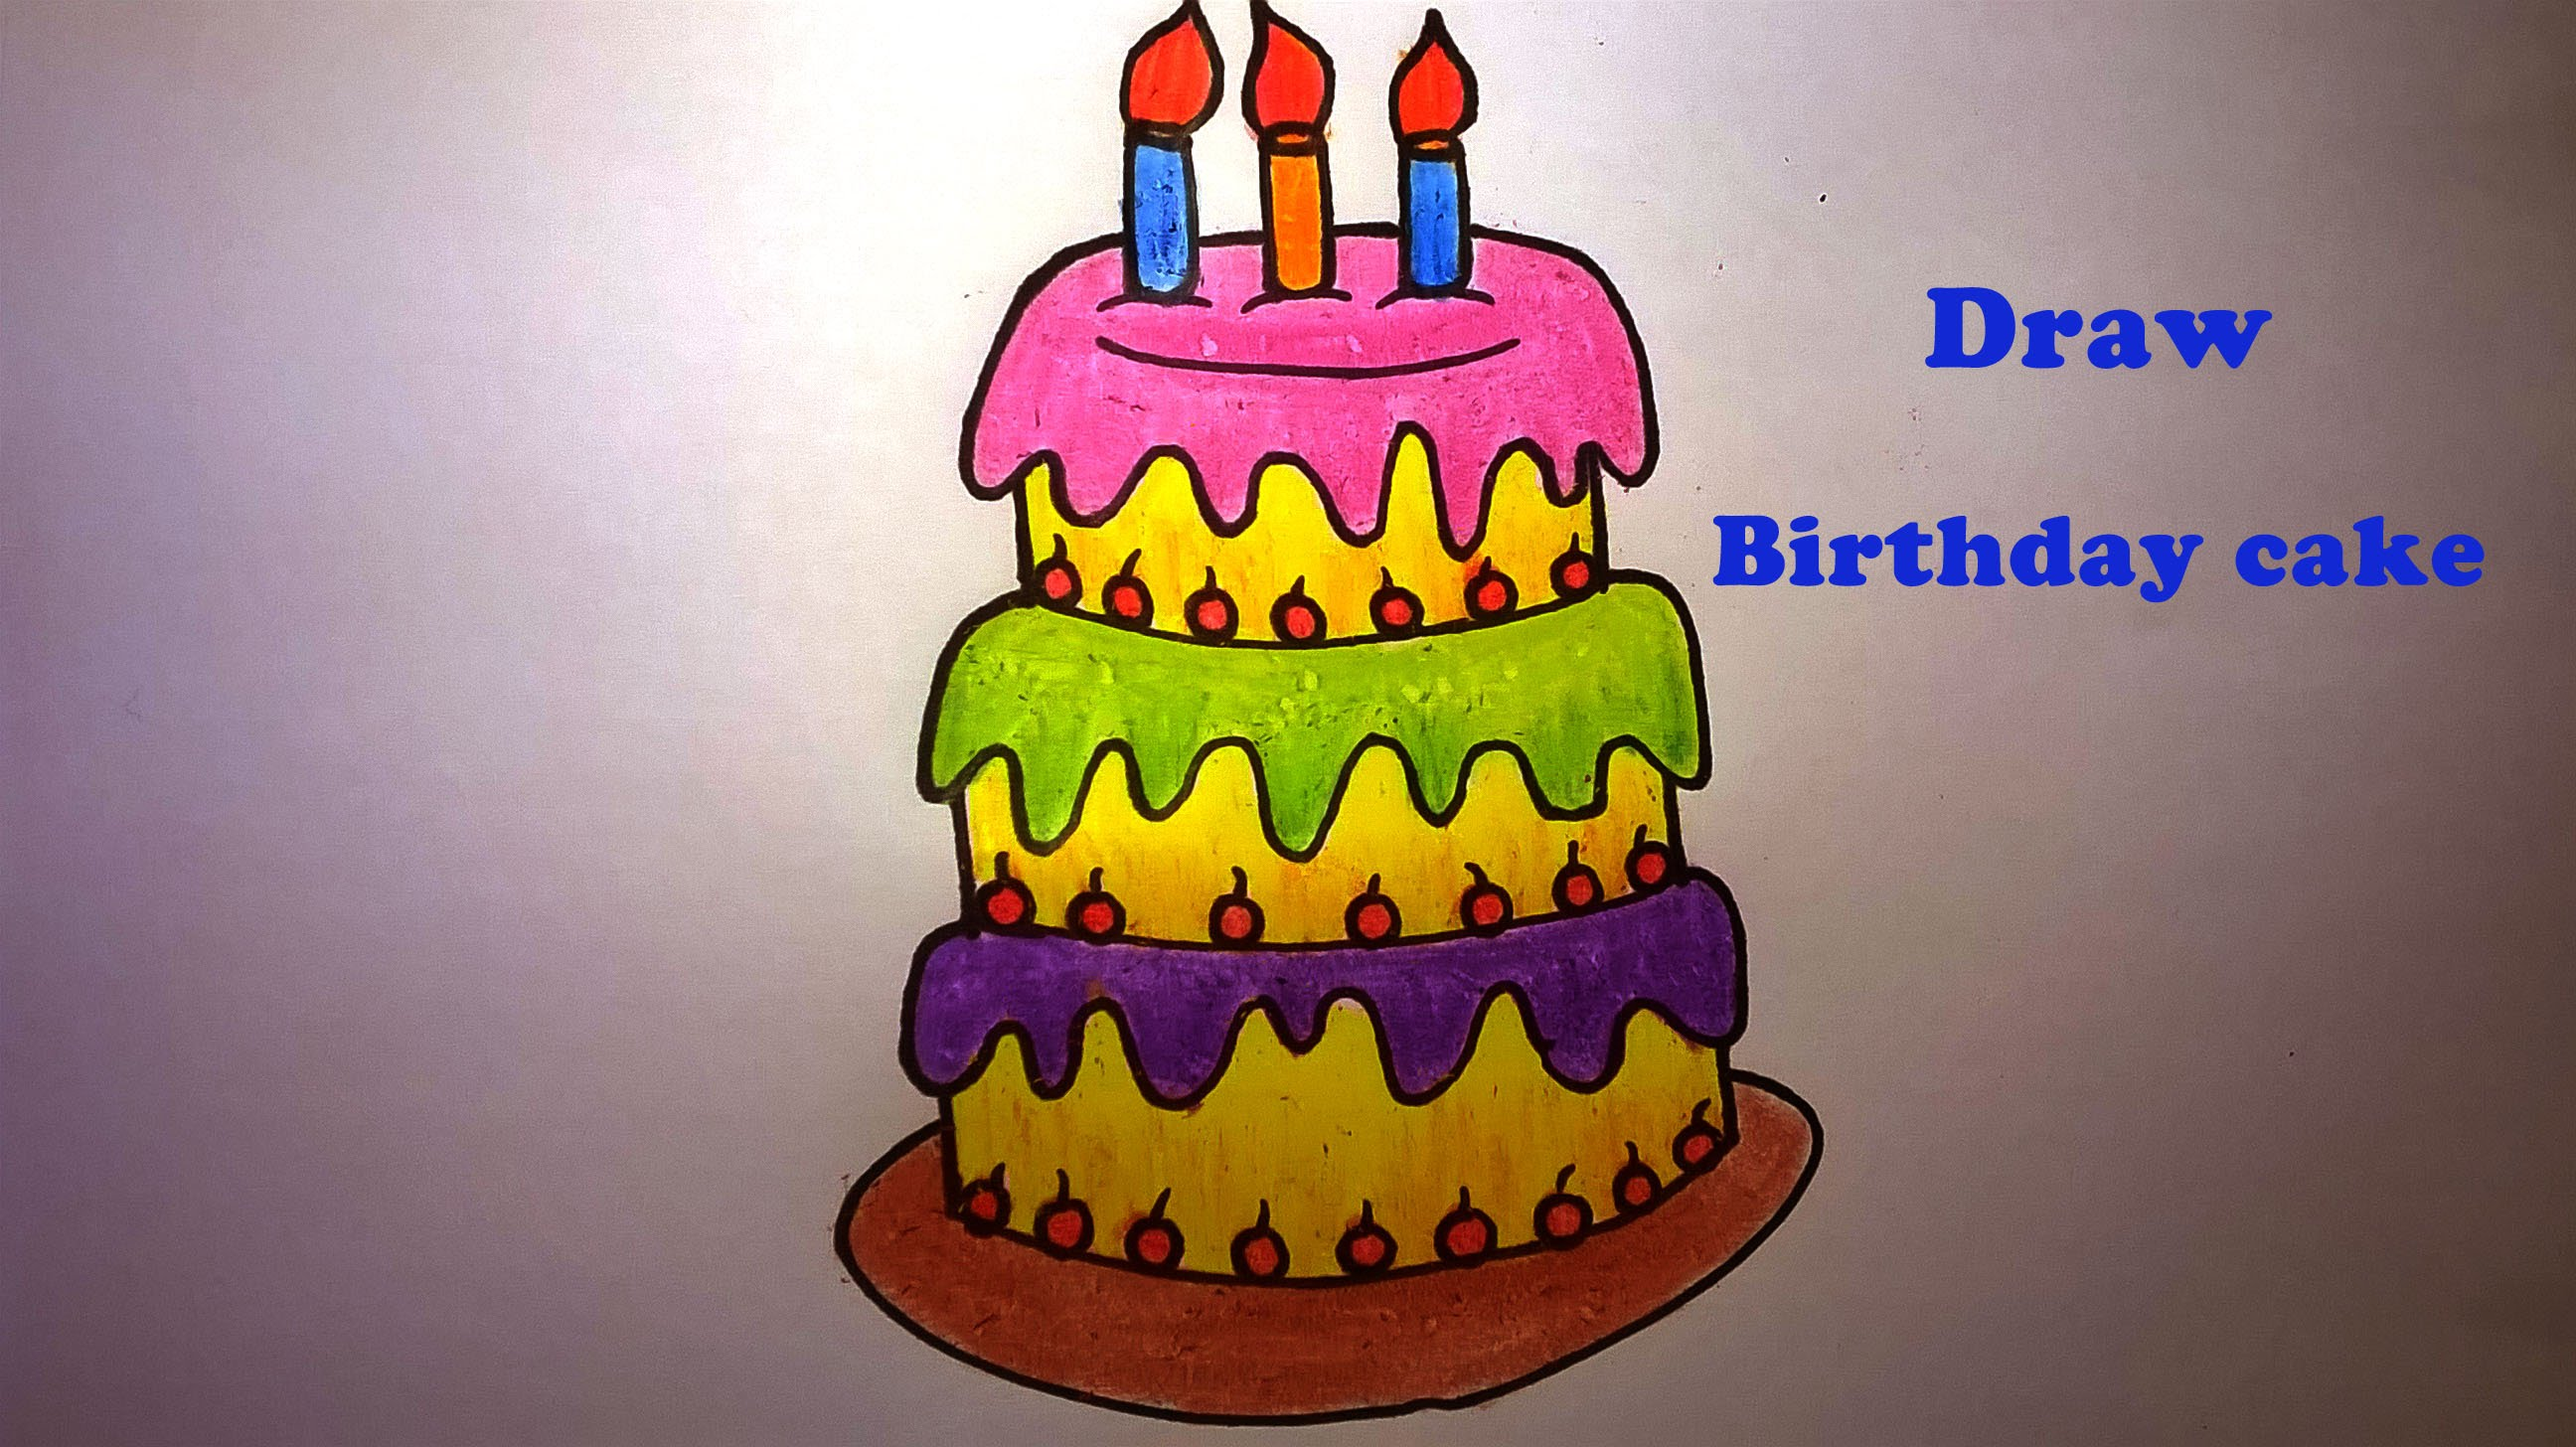 Birthday Cake Outline Printable ~ Birthday cake drawing images at getdrawings.com free for personal